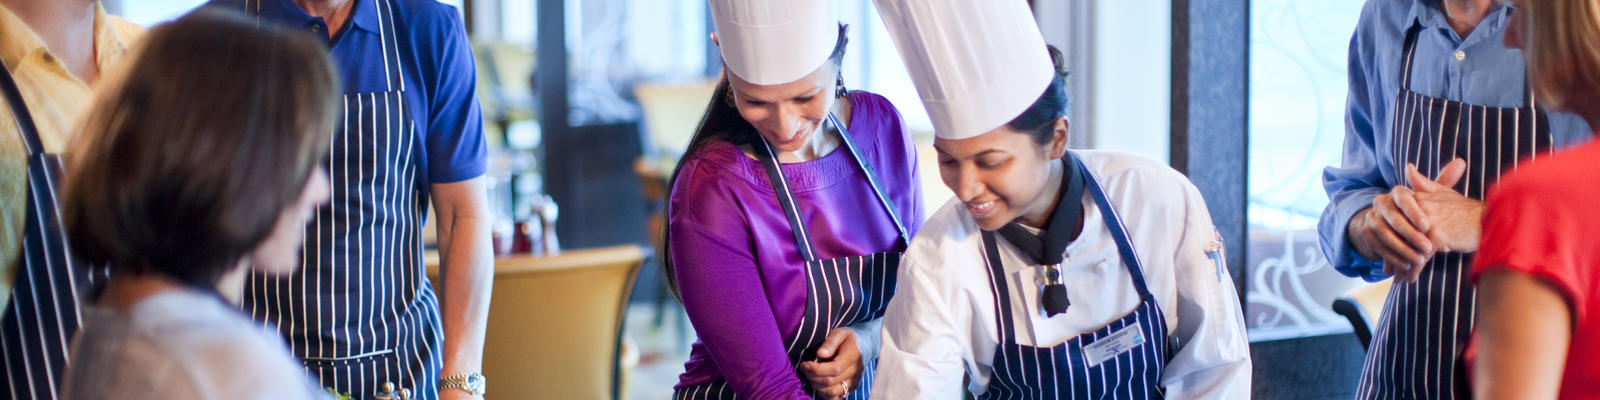 A culinary themed cruise hosted by Celebrity Cruise Line (Photo: Celebrity Cruise Line)